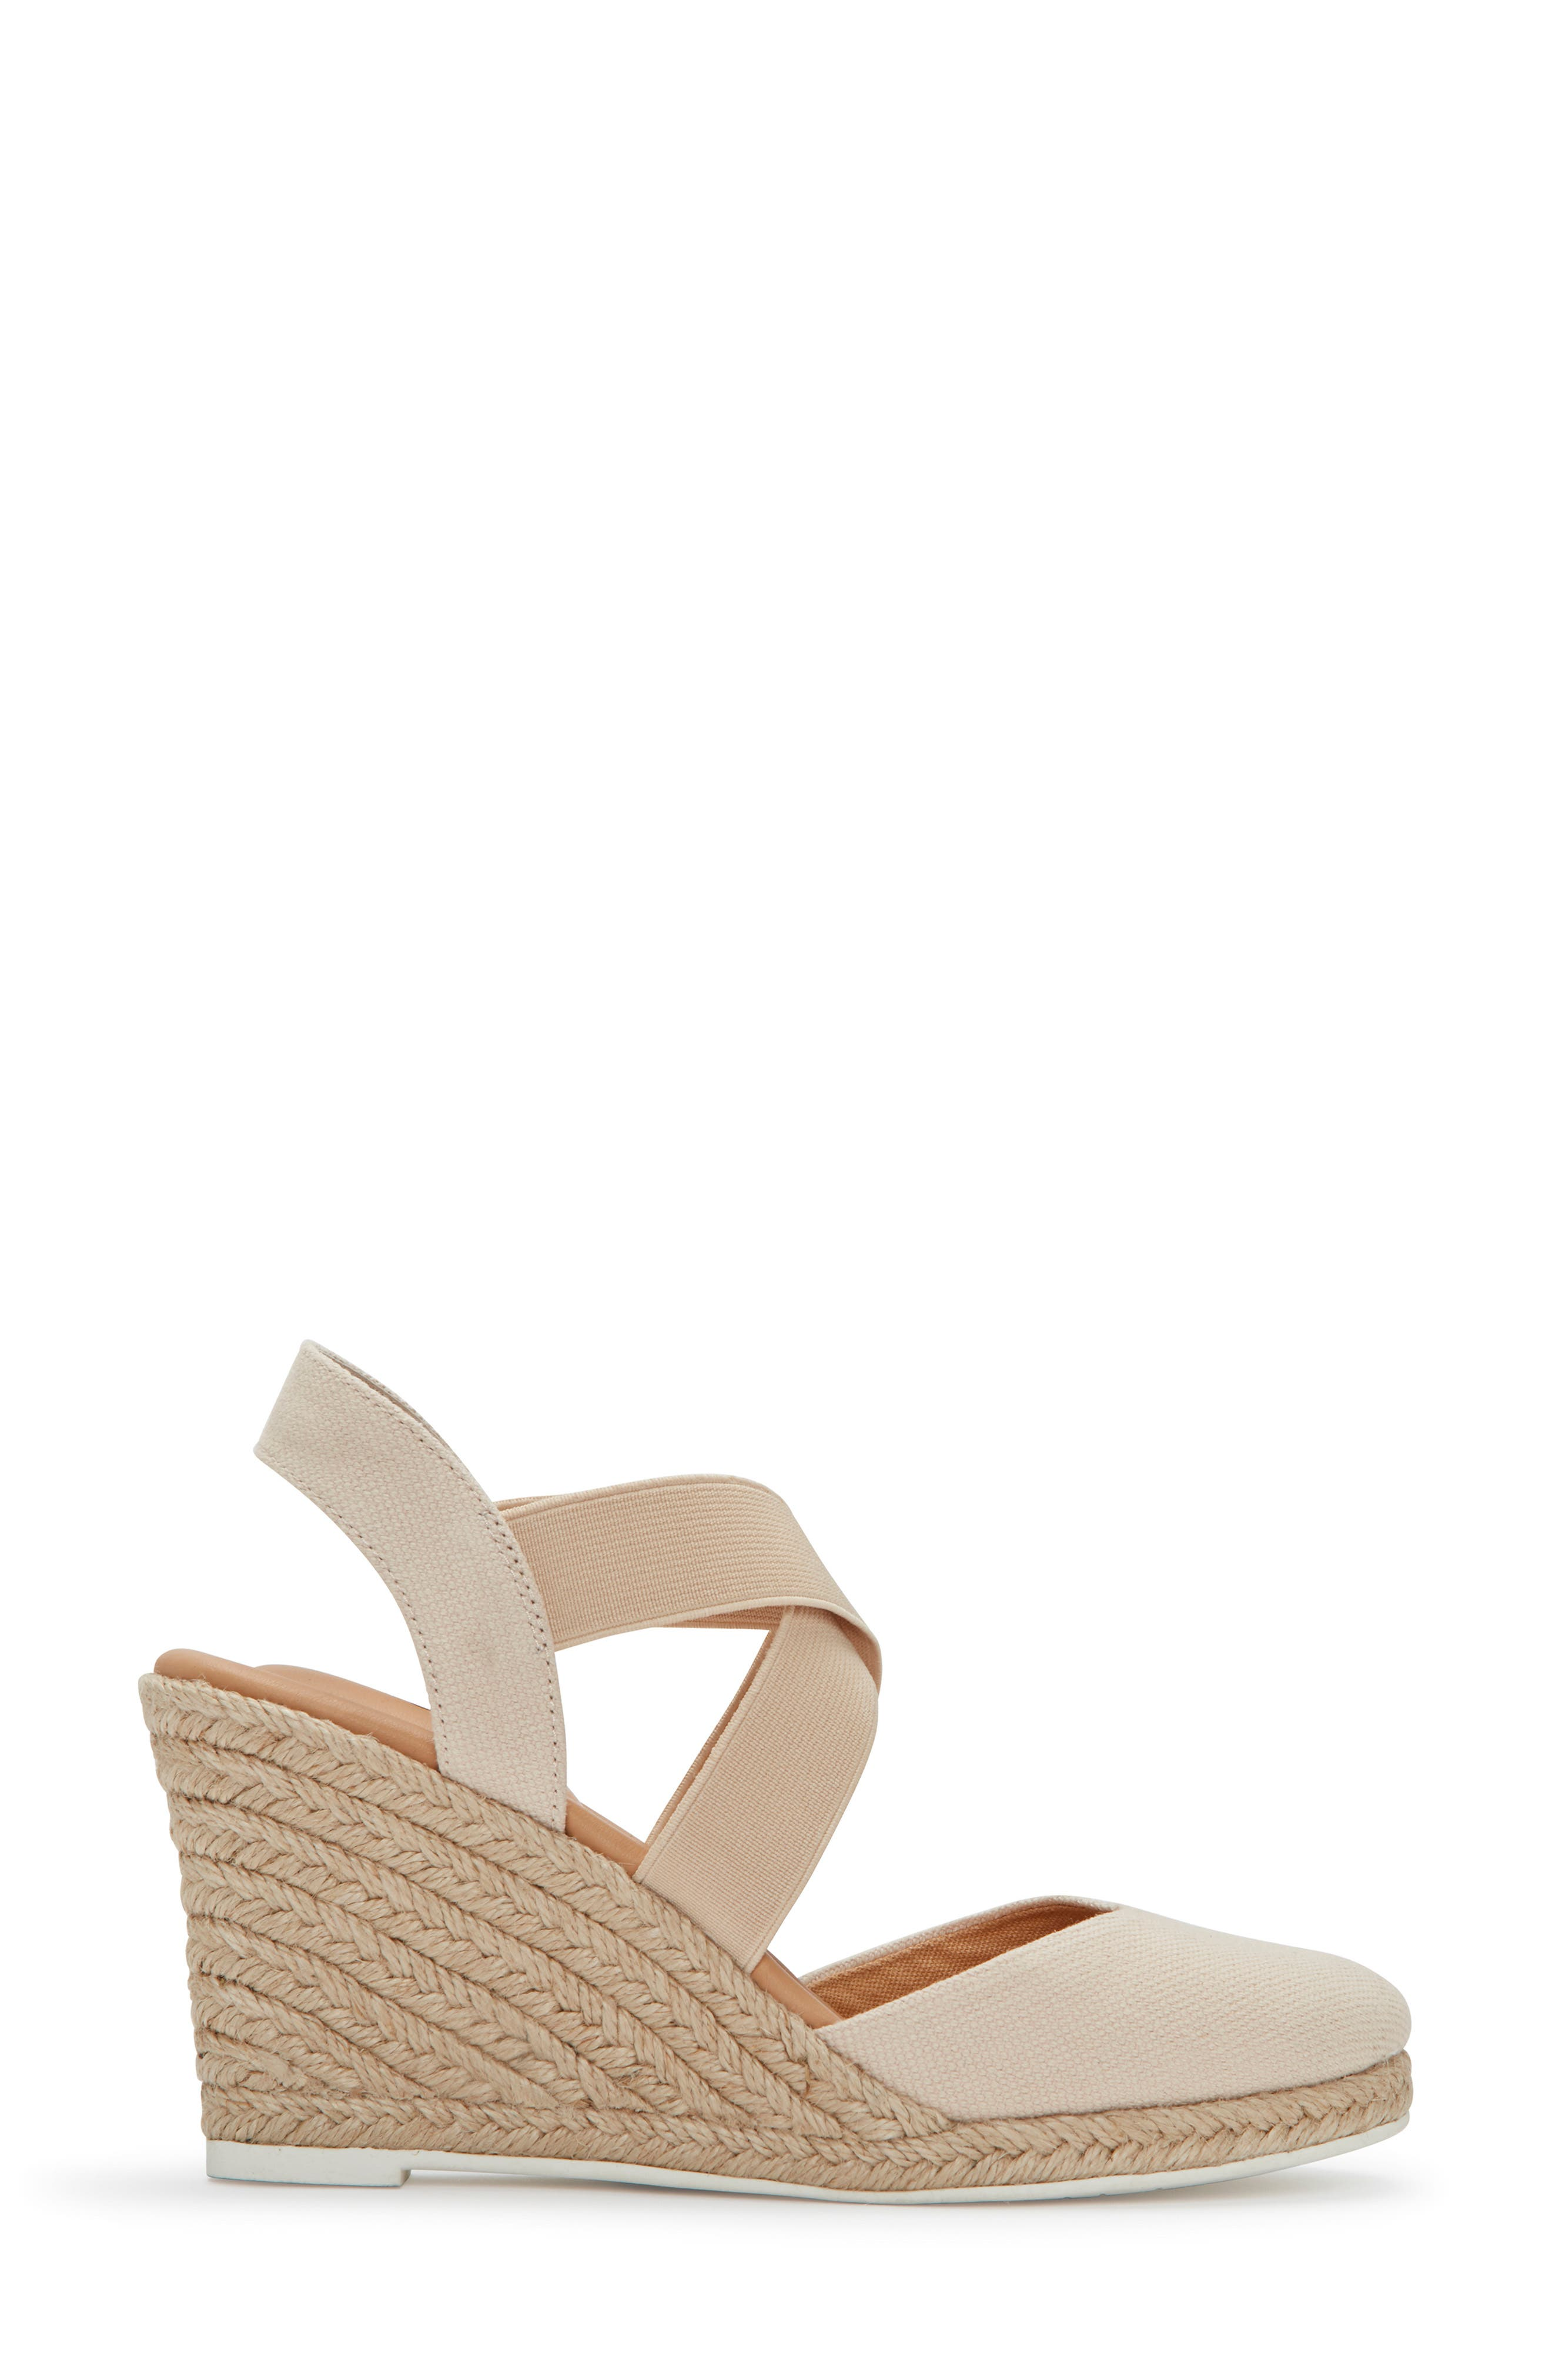 ME TOO, Brinley Espadrille Wedge, Alternate thumbnail 3, color, NATURAL CANVAS